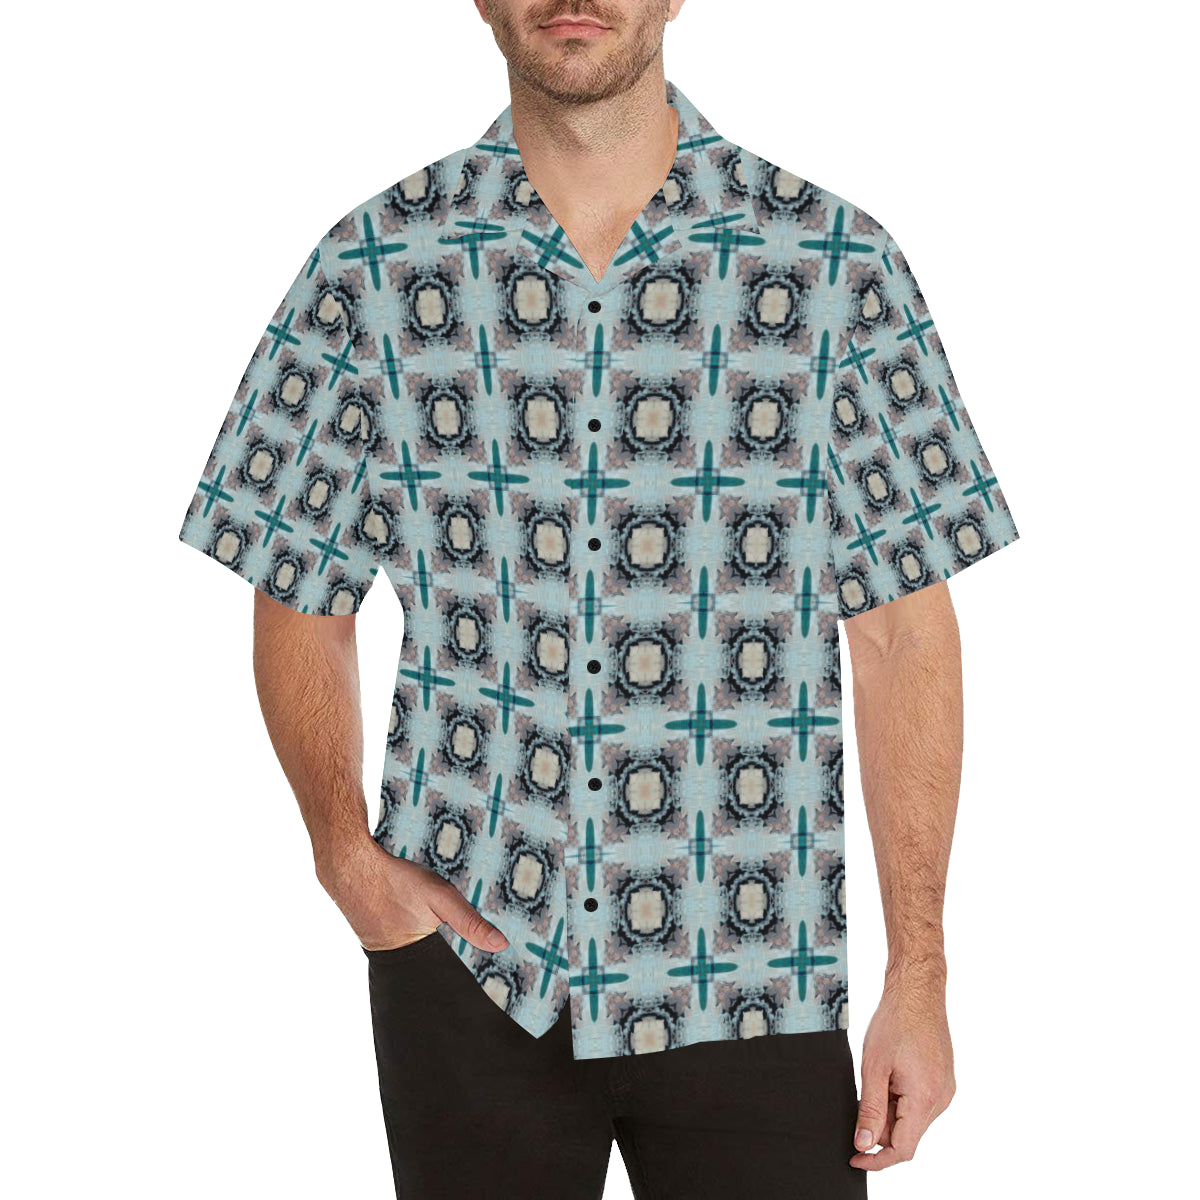 ChuArts Men's All Over Print Hawaiian Shirt